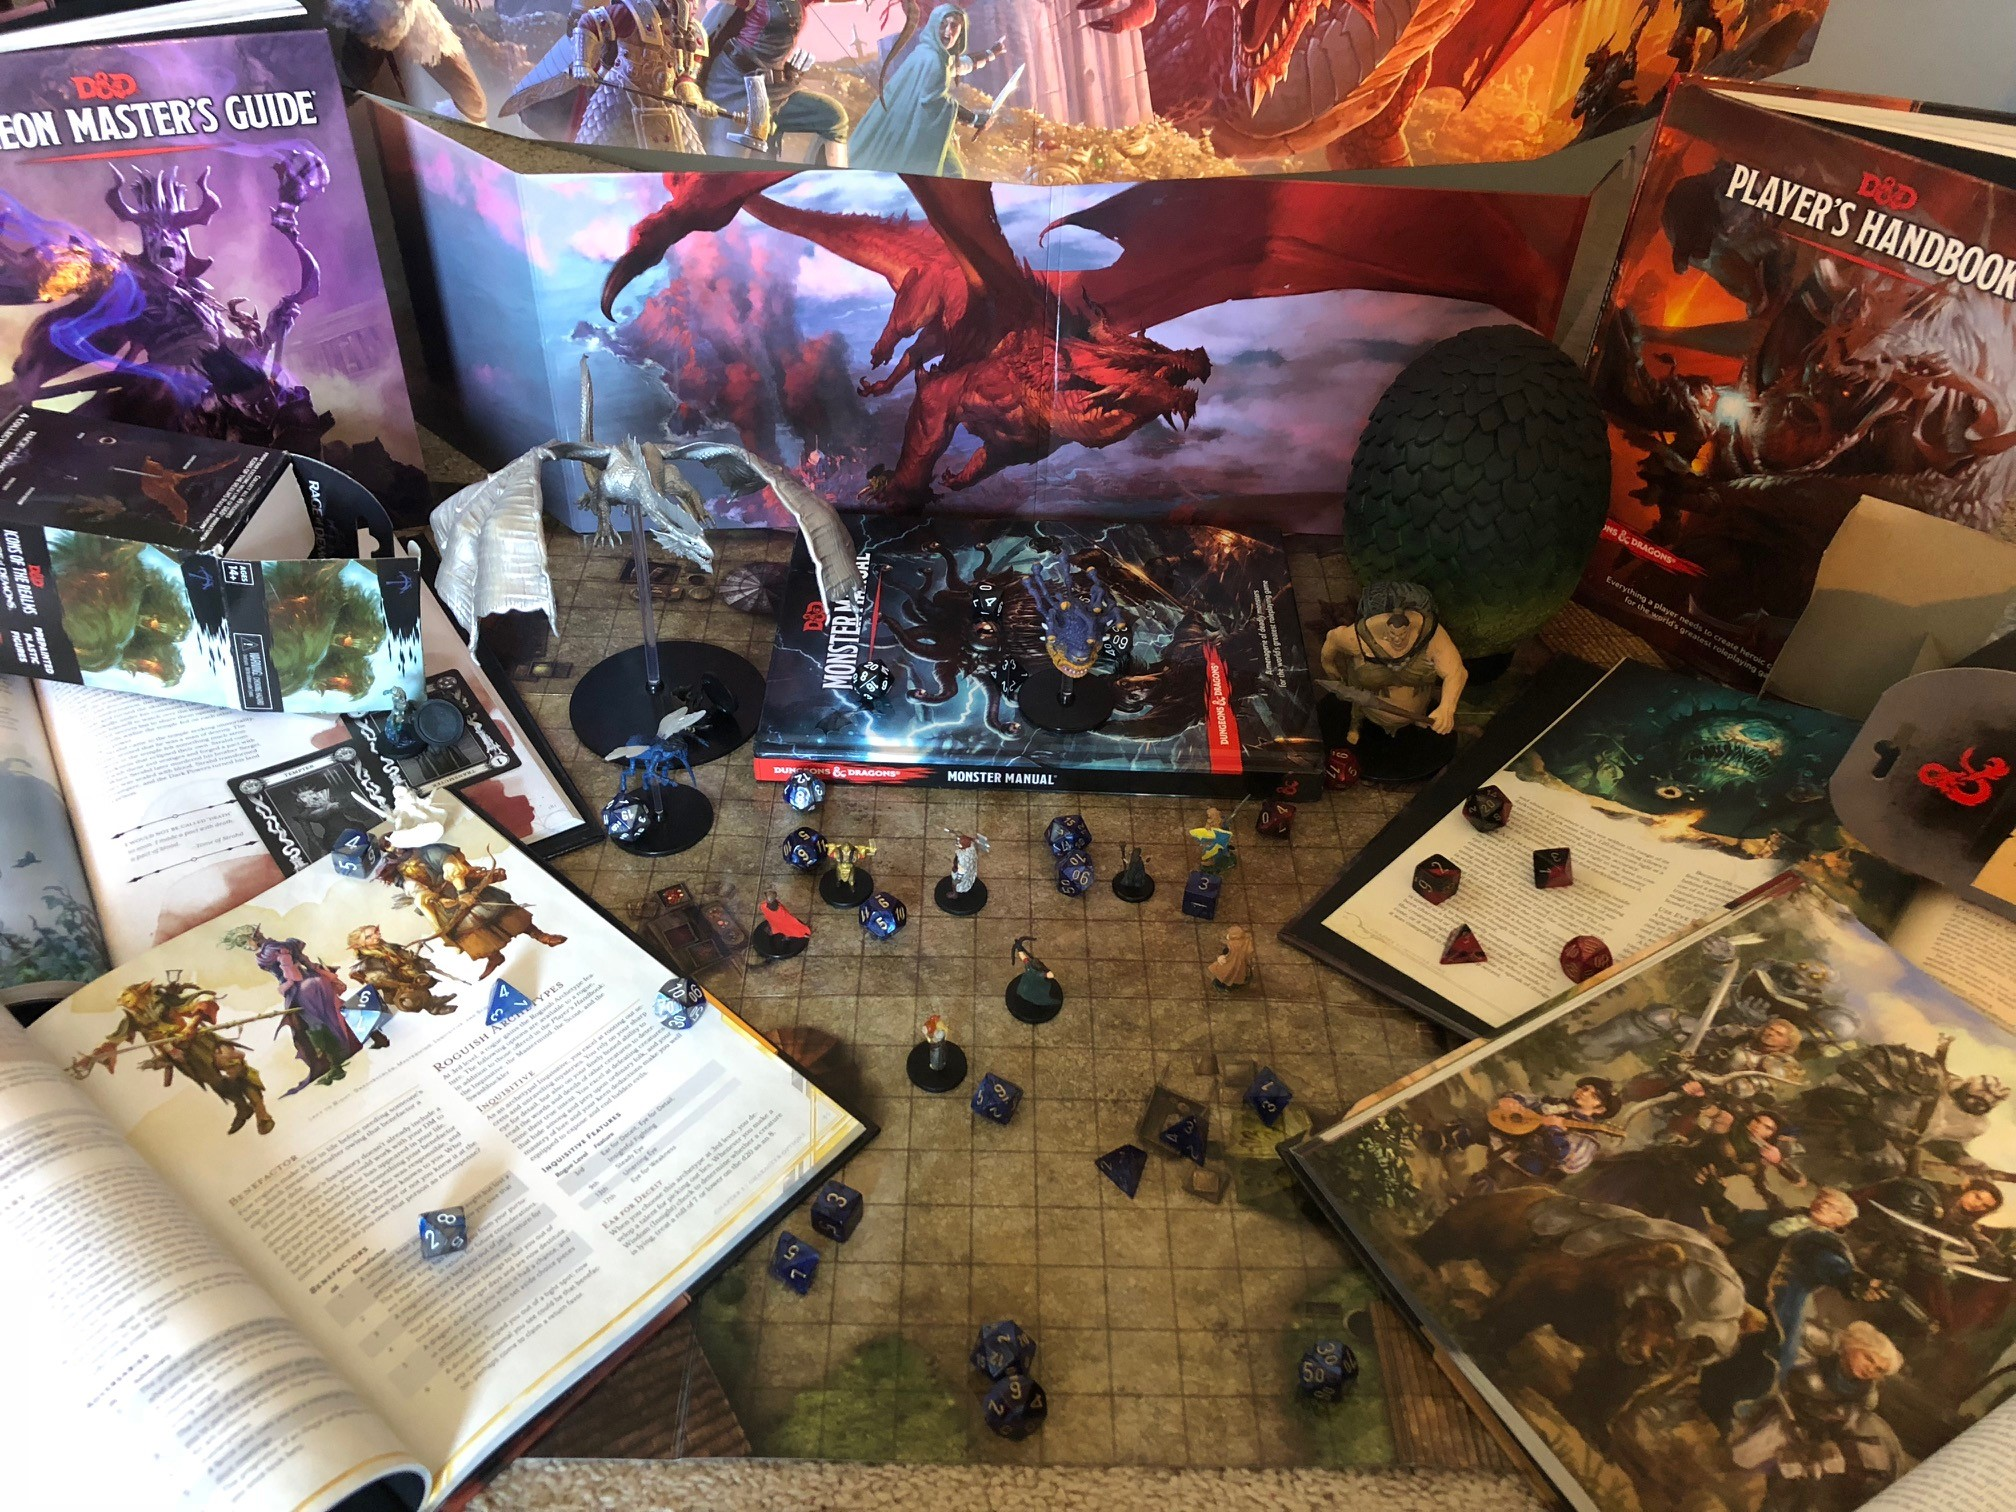 Display of game materials, handbooks, and figures